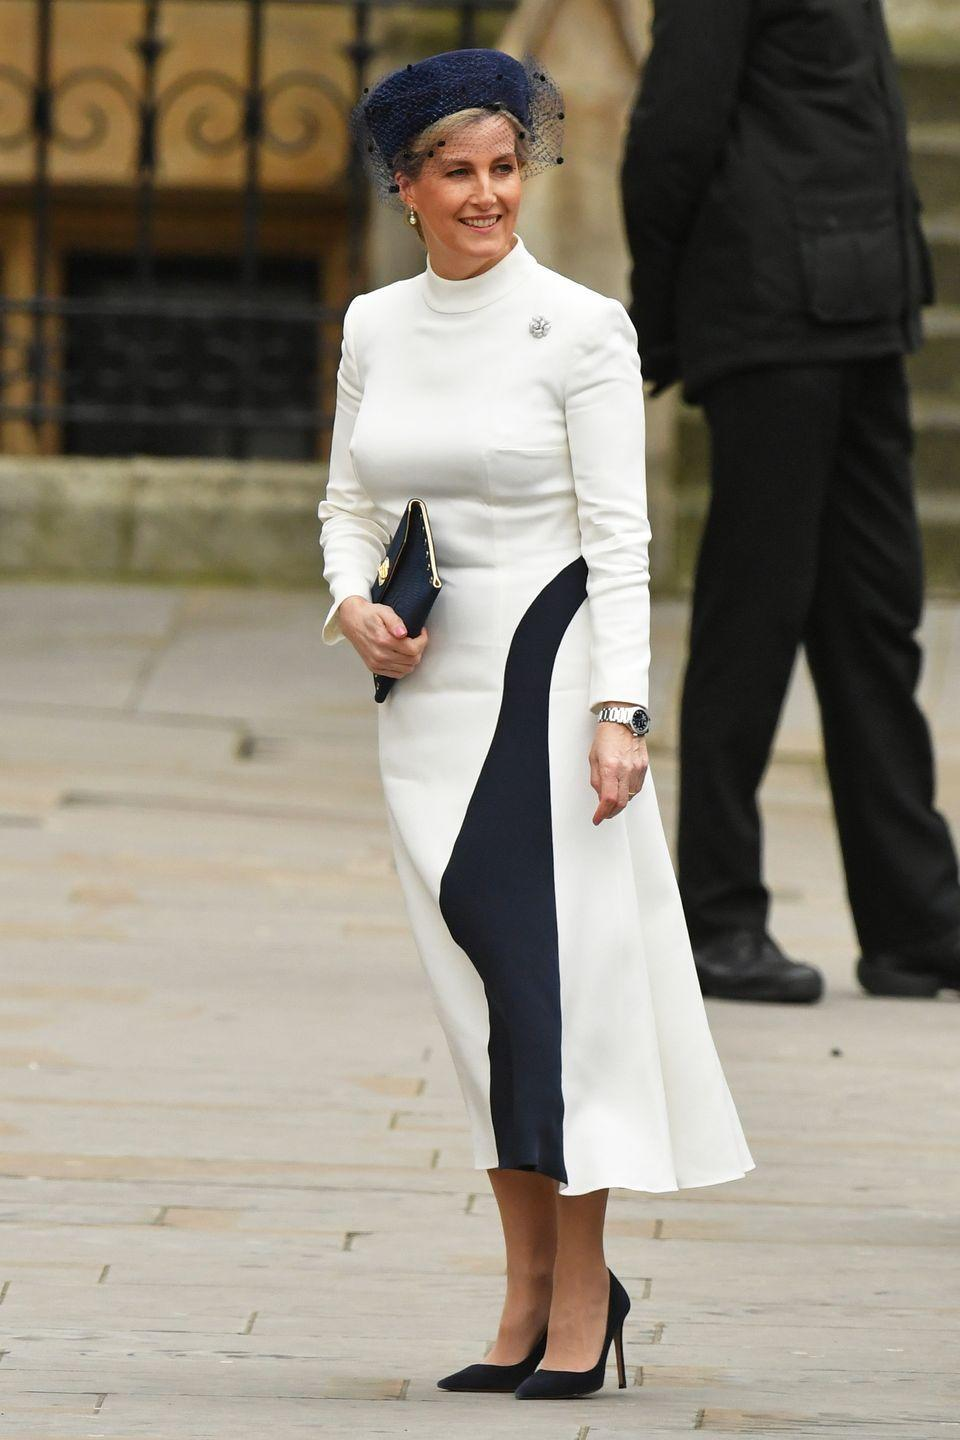 <p>For this year's Commonwealth Day Service at Westminster Abbey, the Countess of Wessex chose a cream dress with a navy design, a look which she paired wiht a bold blue had, small clutch, and pointy-toed shoes.</p>